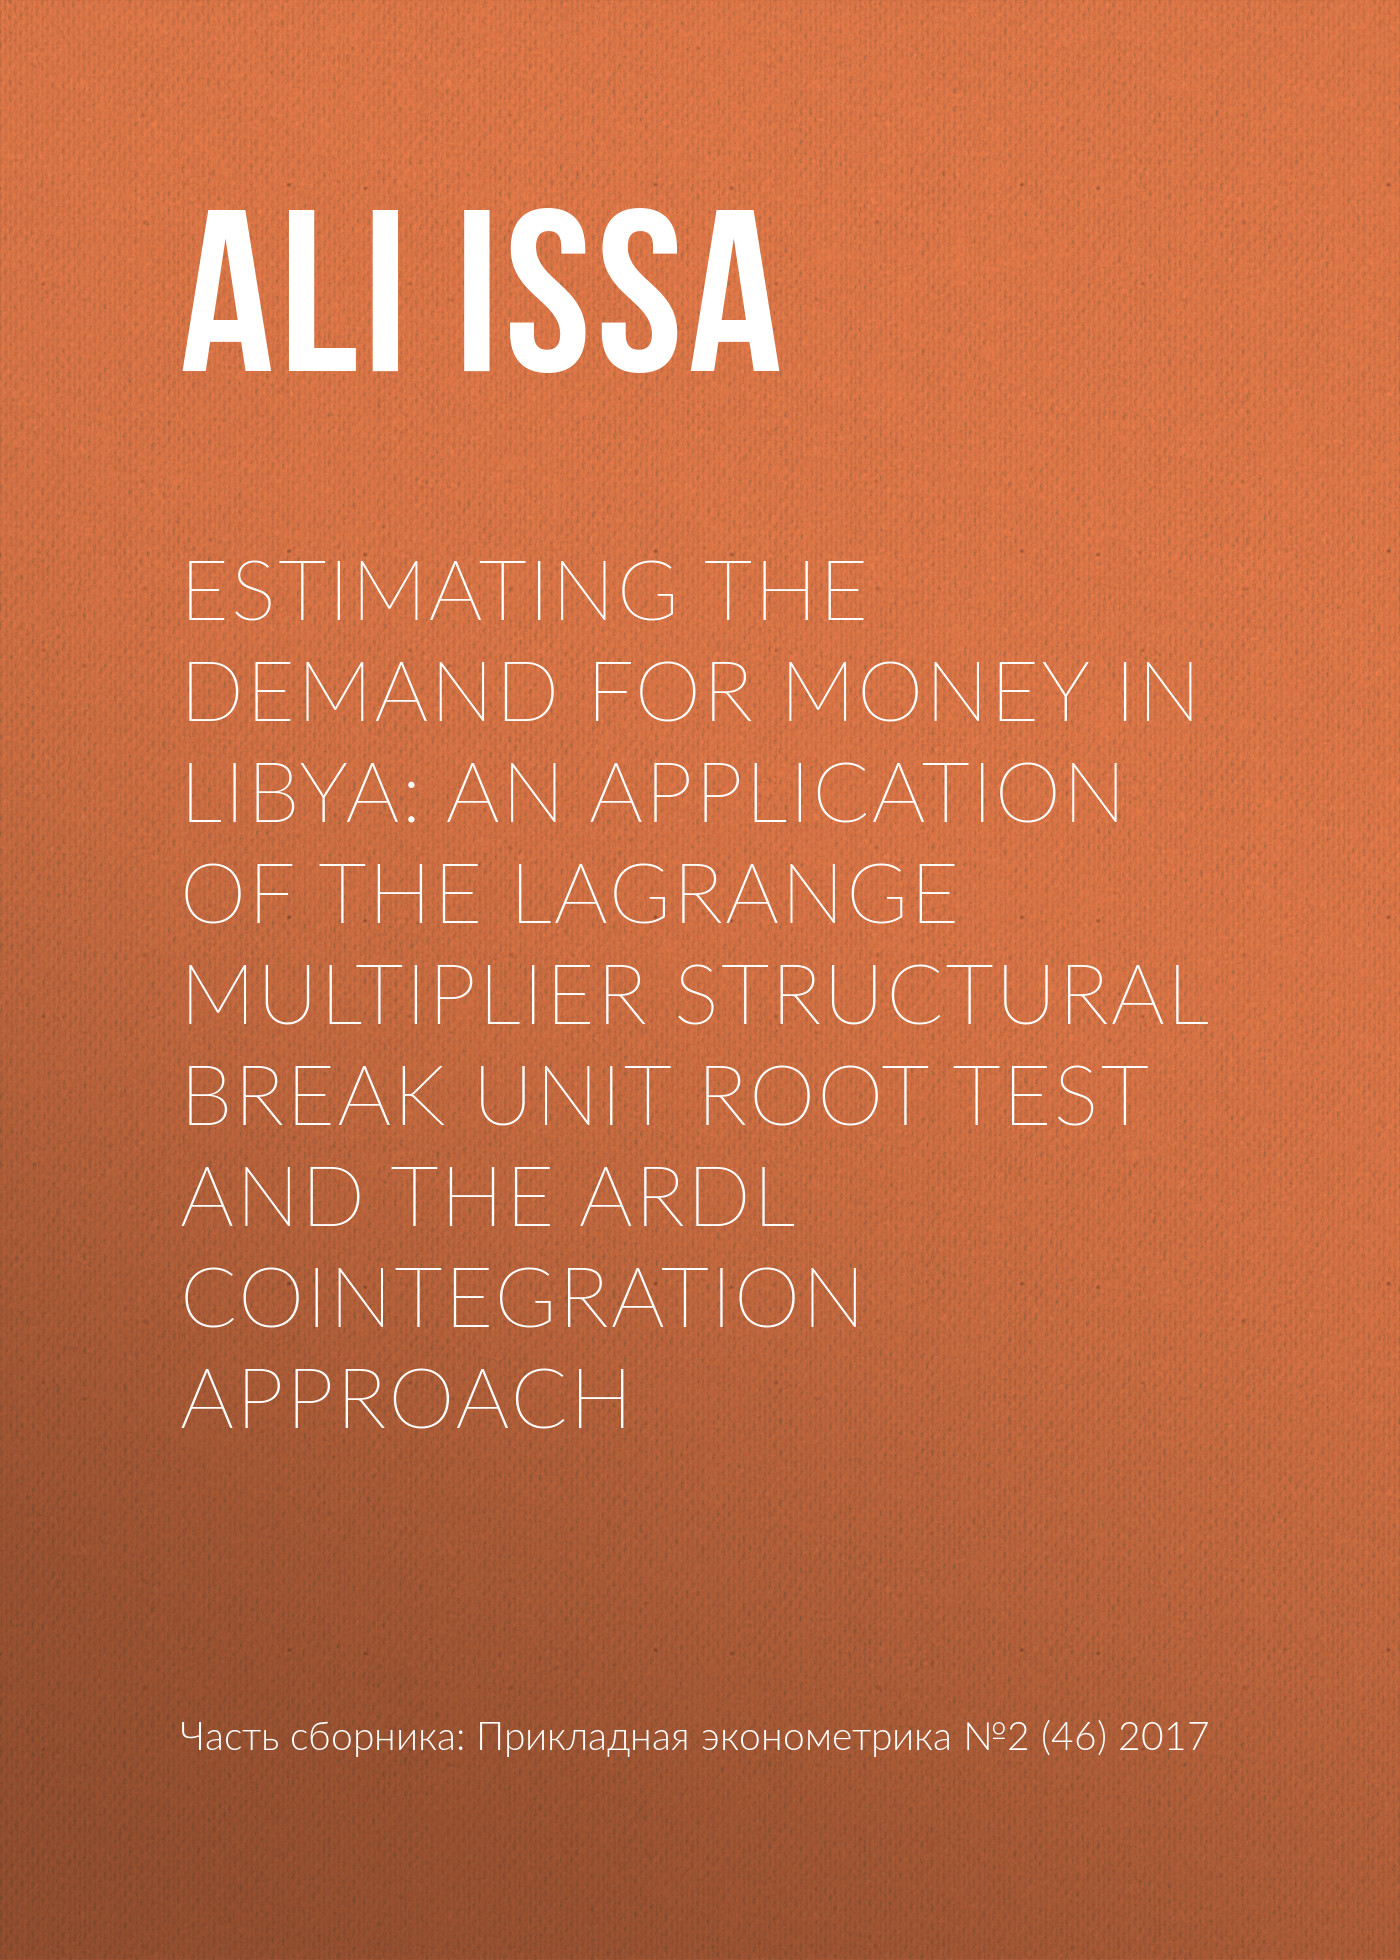 Estimating the demand for money in Libya: An application of the Lagrange multiplier structural break unit root test and the ARDL cointegration approach